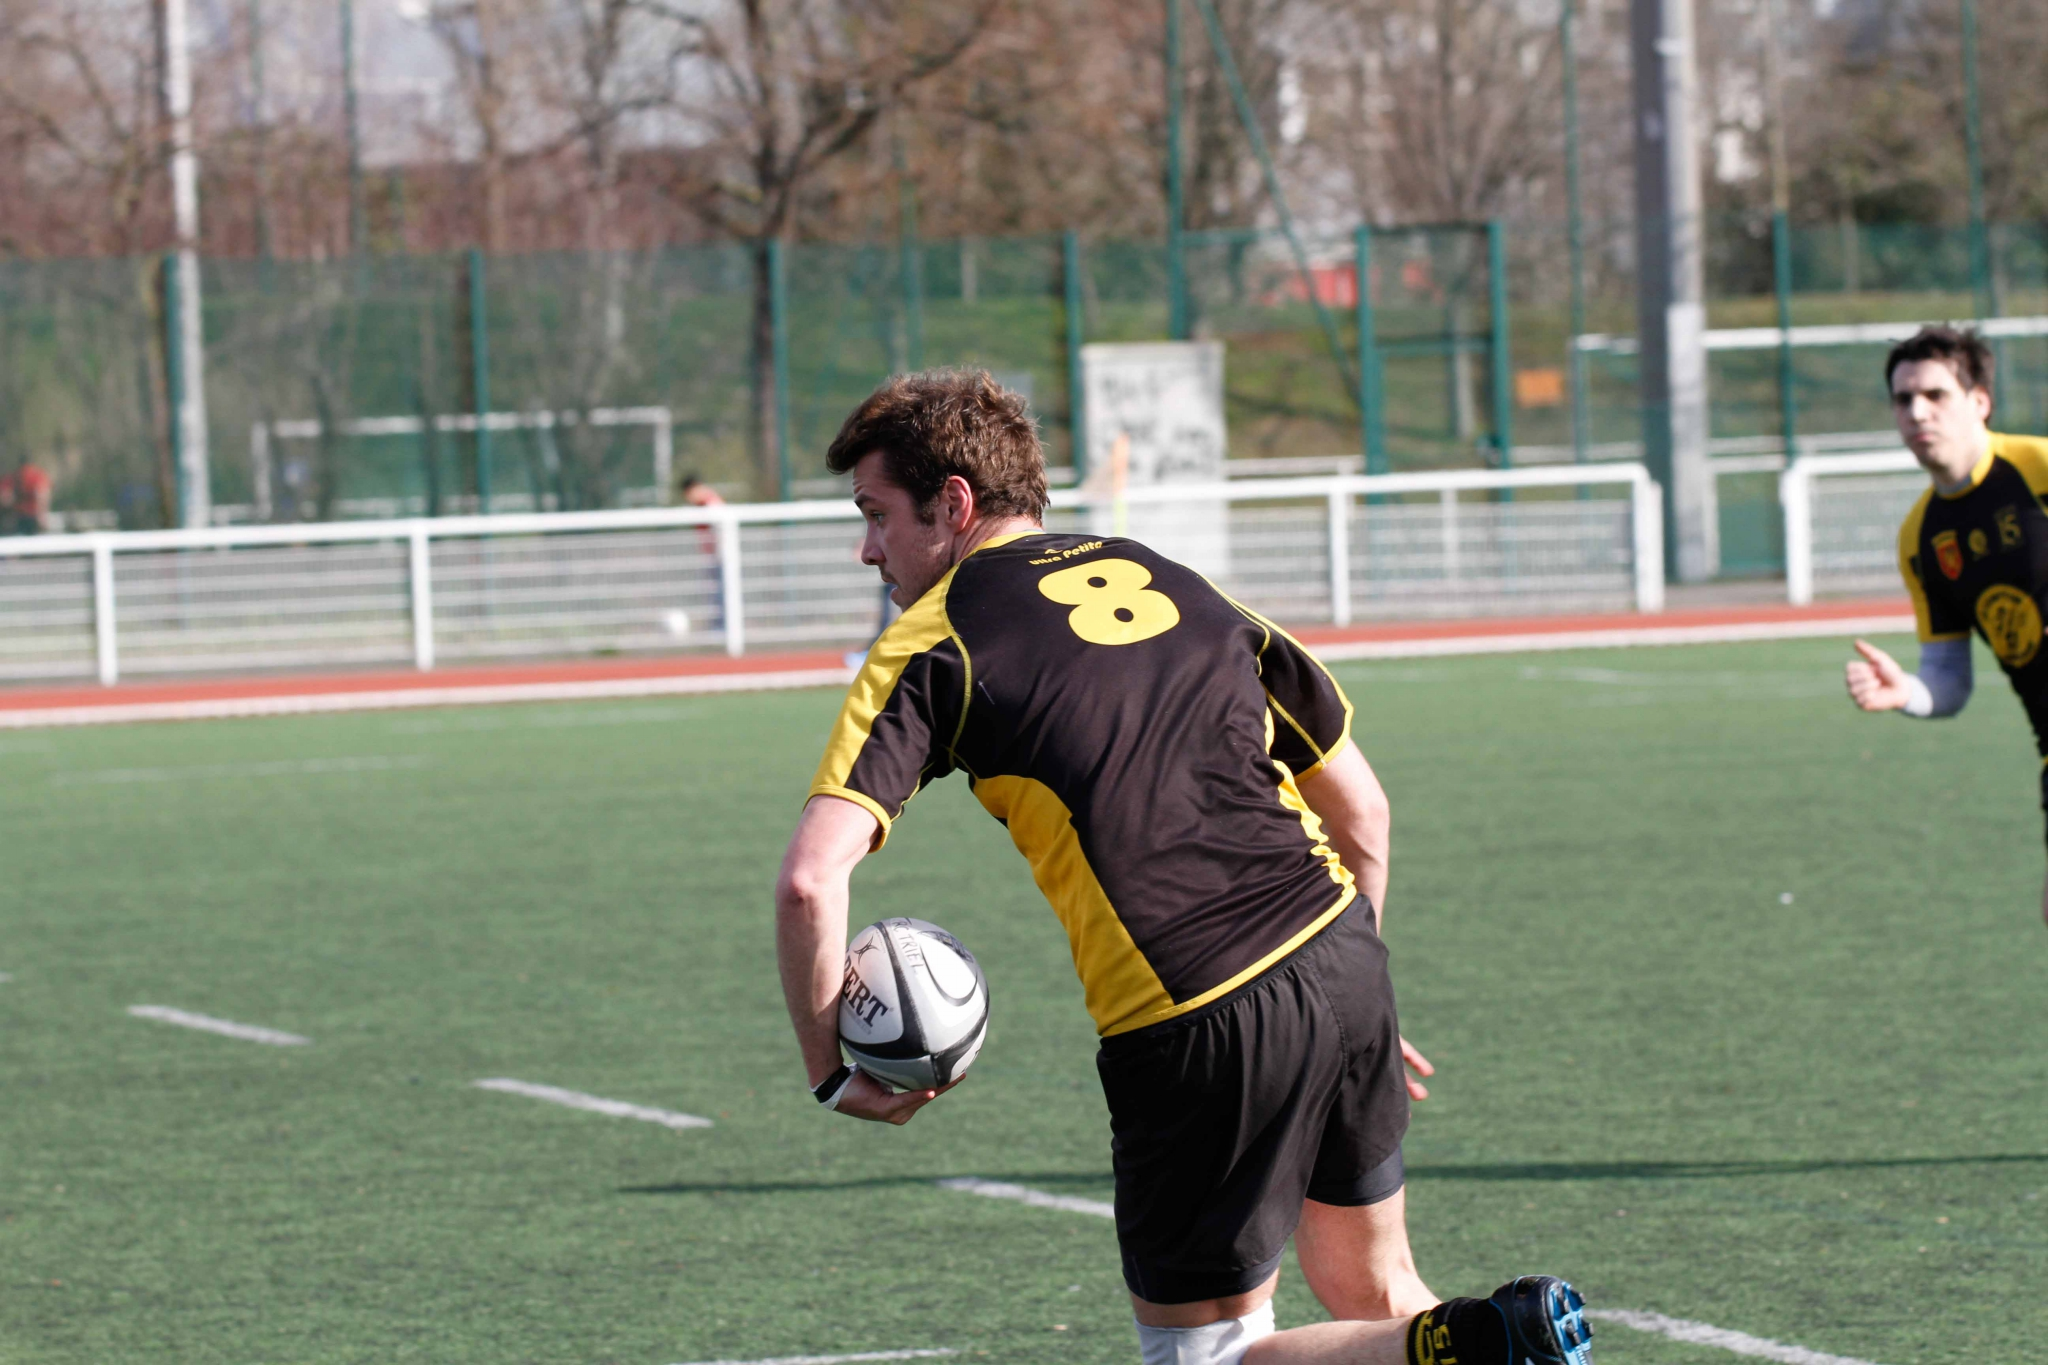 RCP15-RCT-R28